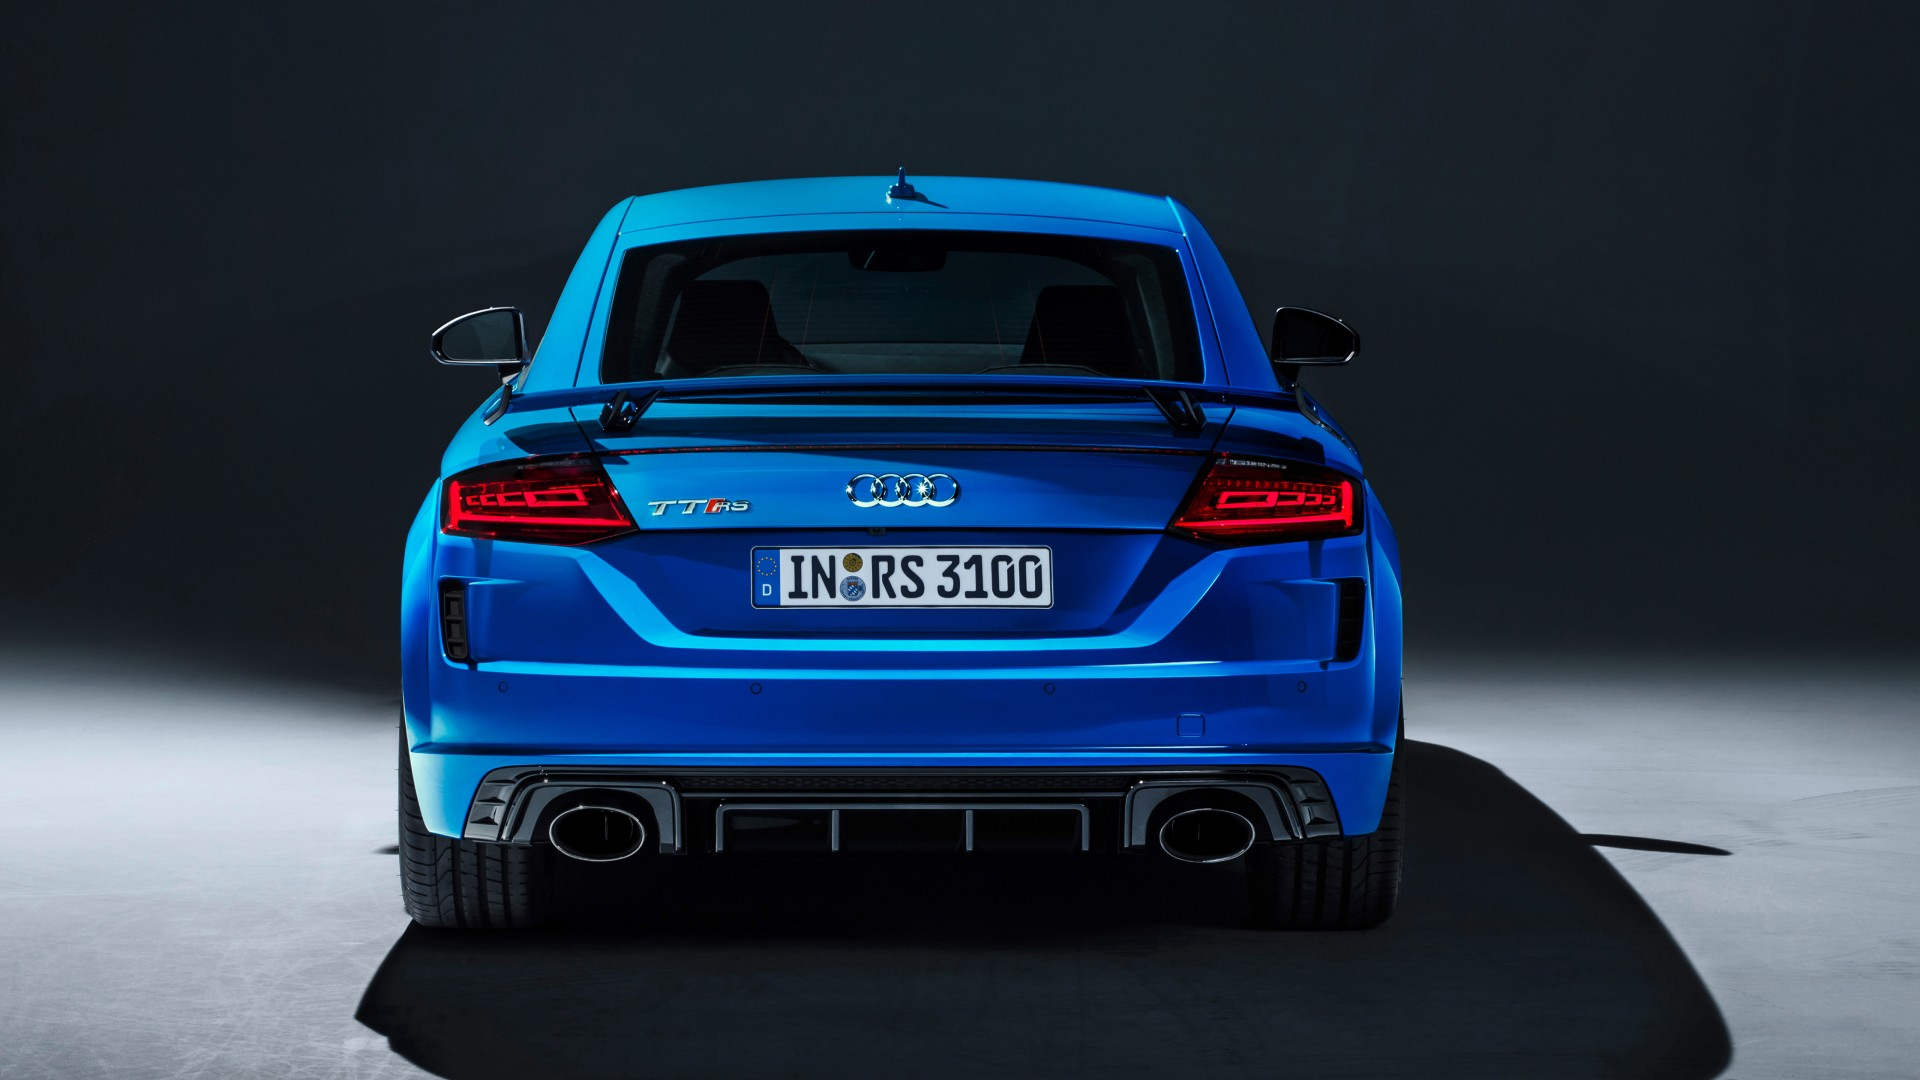 Car Wallpaper Hd  Audi Tt Rs Coupe 2019 5k Wallpaper Hd Car Wallpapers